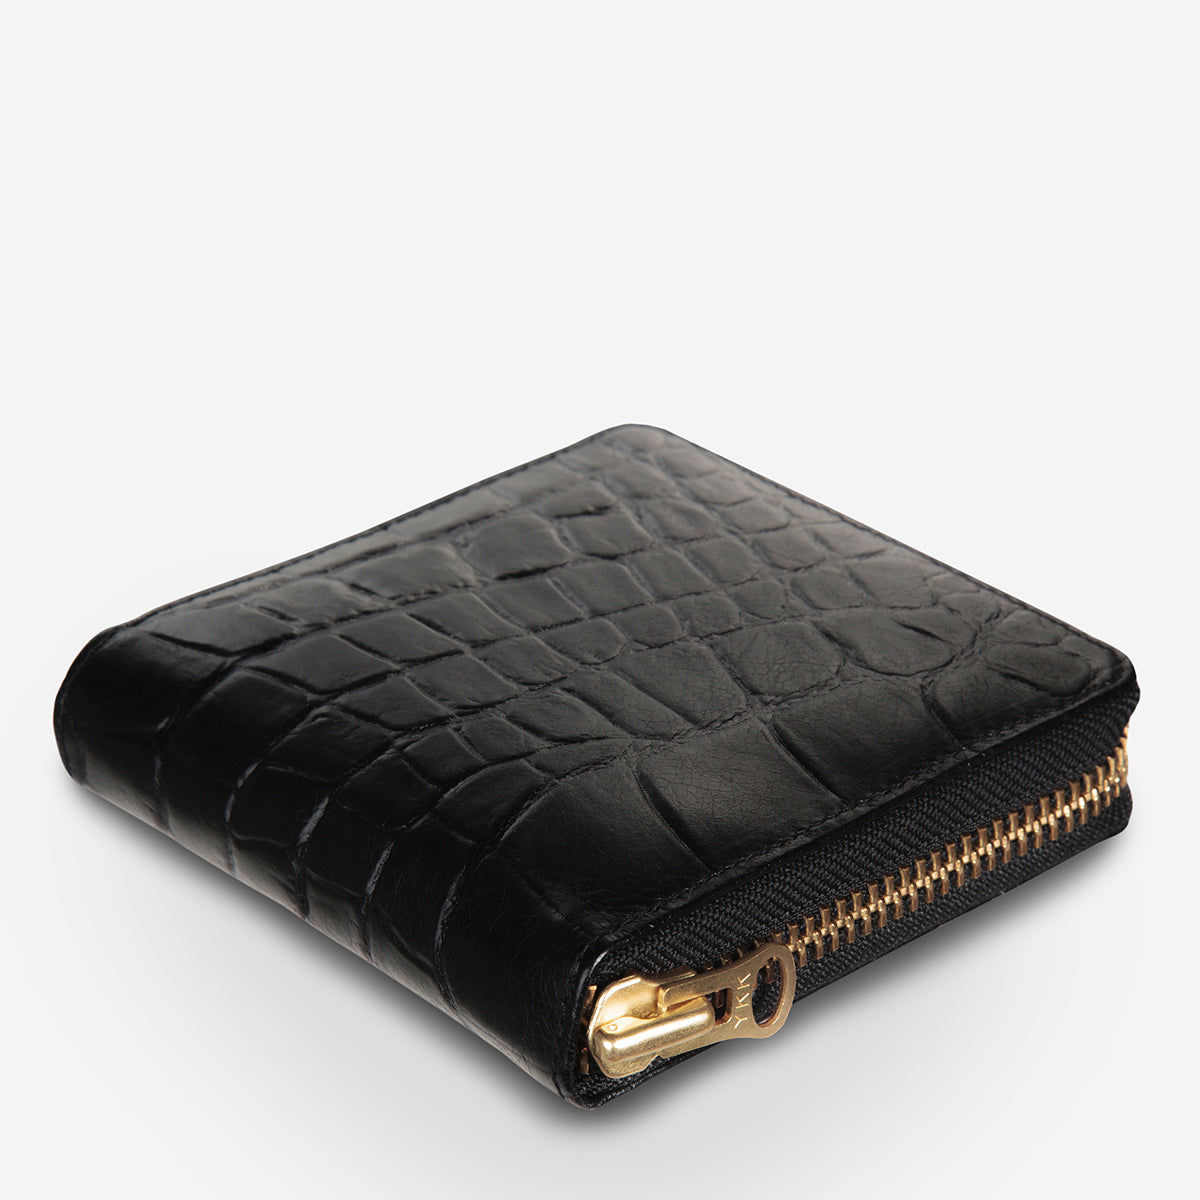 Status Anxiety Empire Leather Wallet - Black Croc